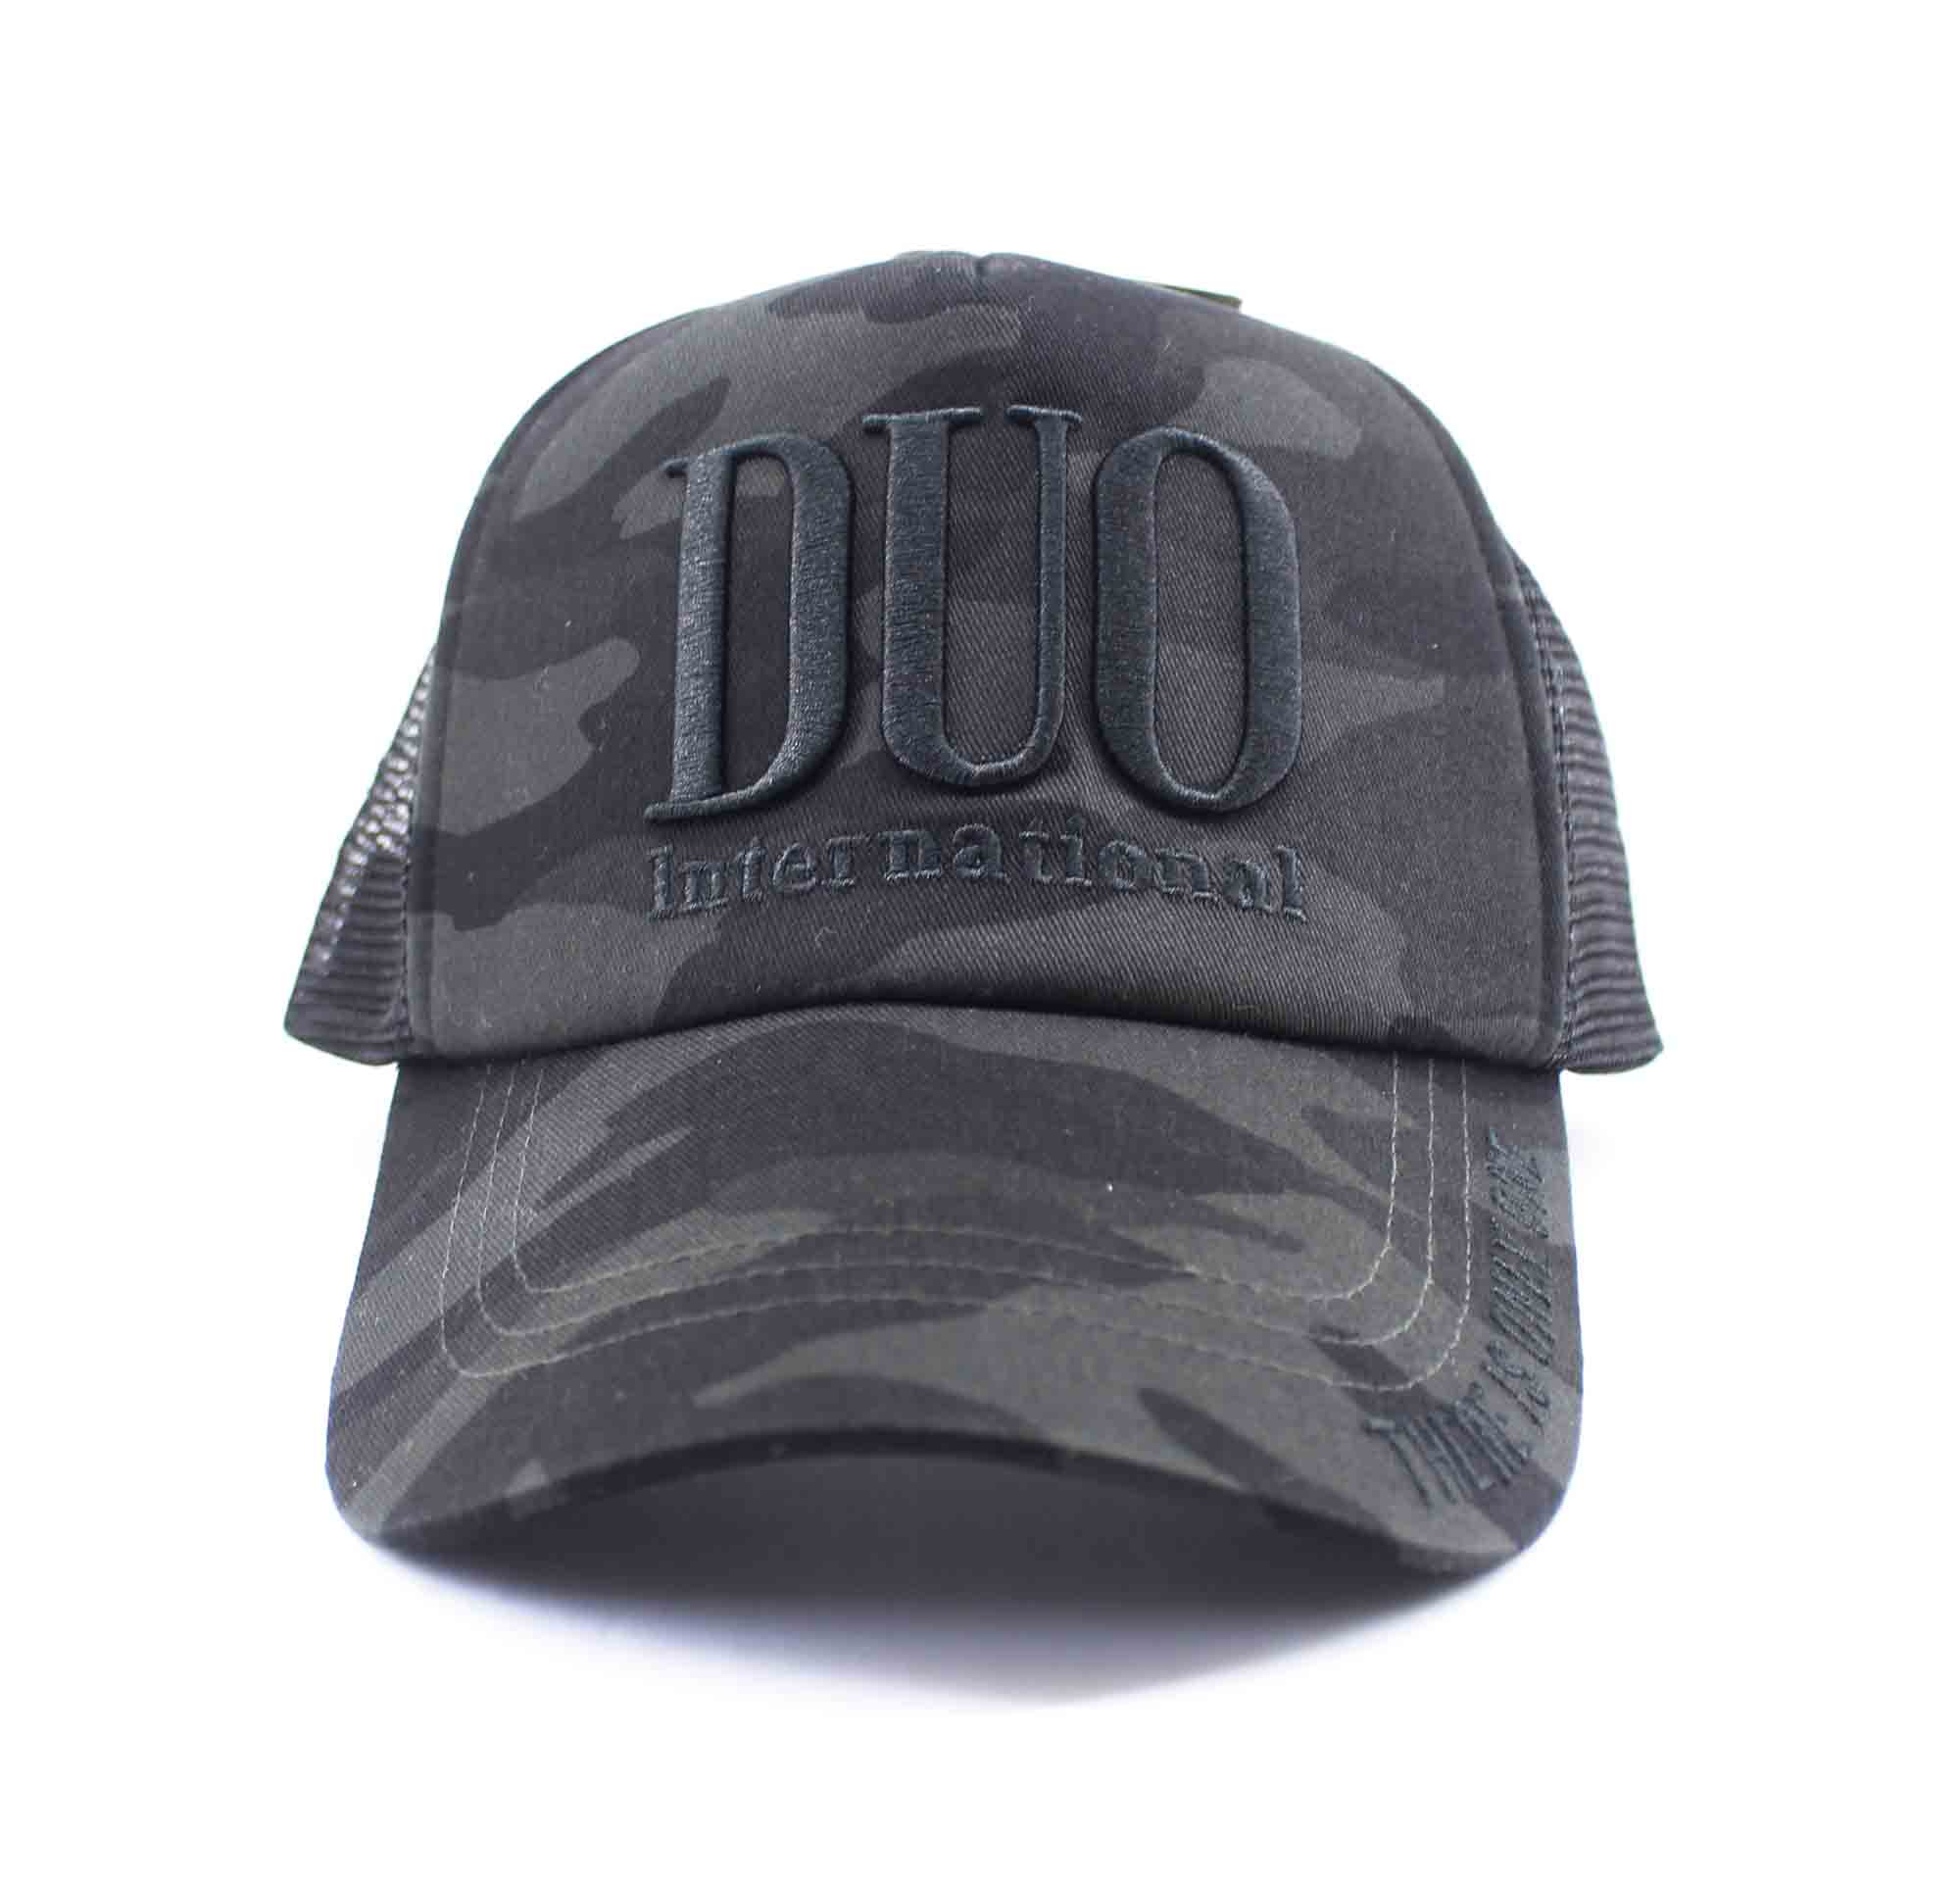 Duo Cap Trucker Cap Original Japan Free Size Black Camo (8005)